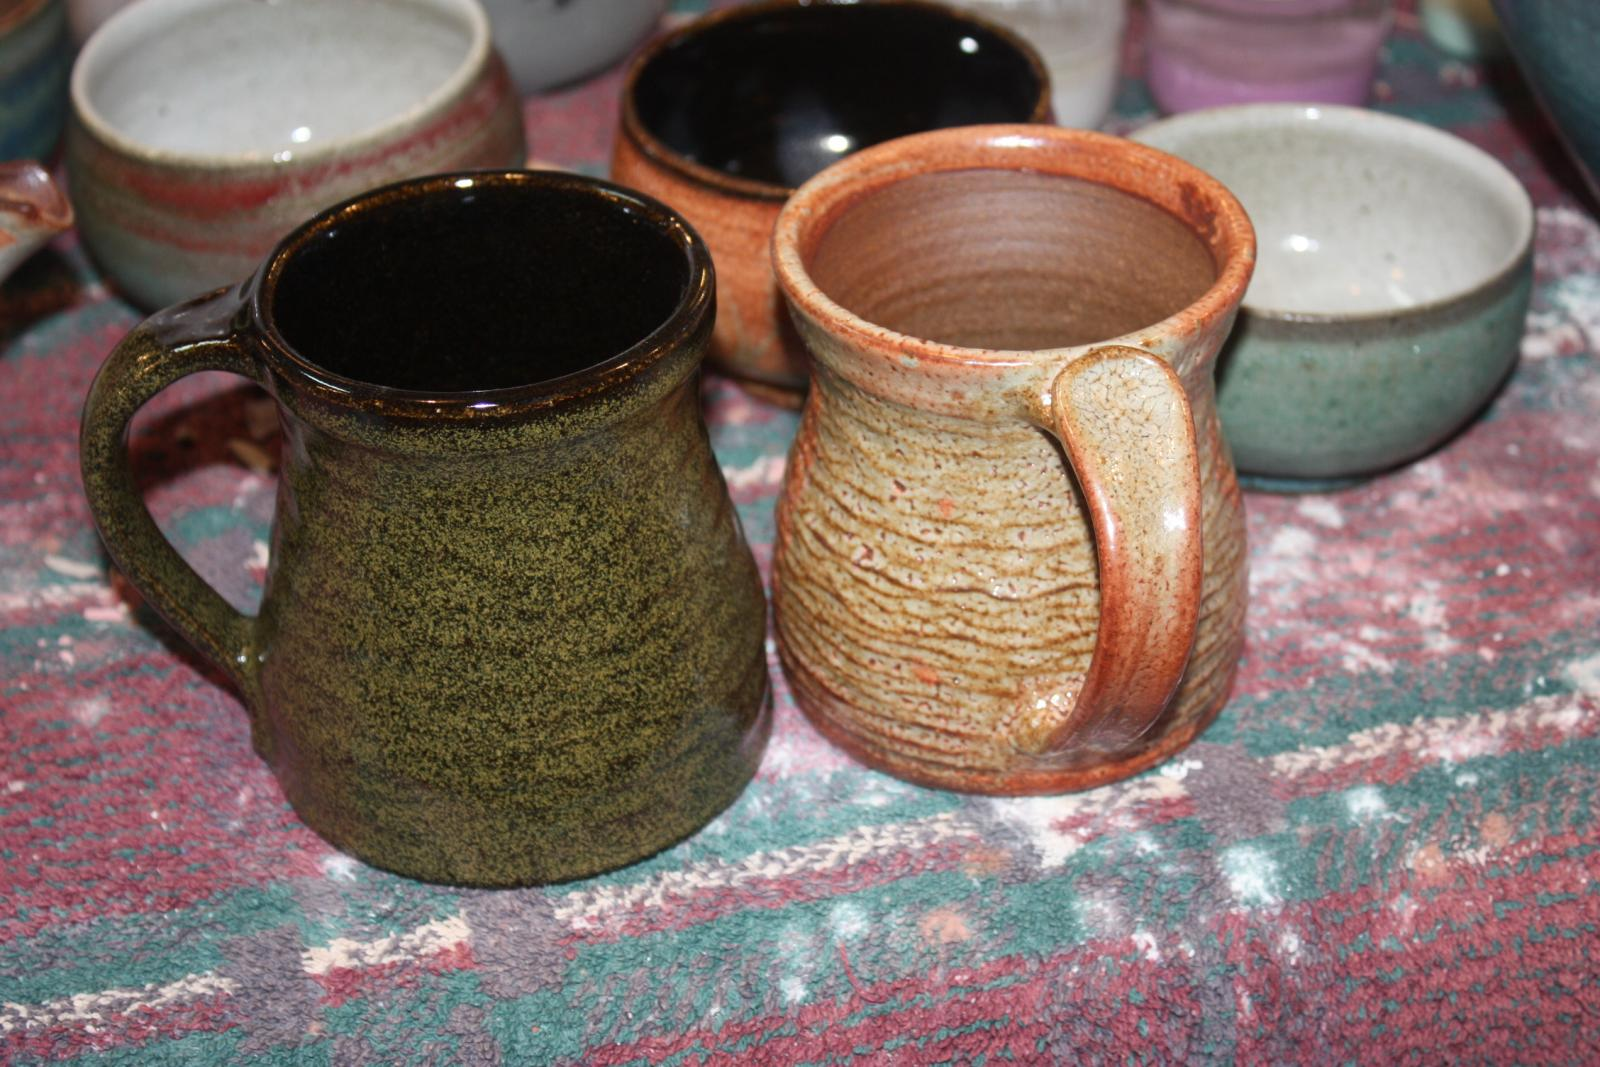 cups and tea bowls from Sept firing